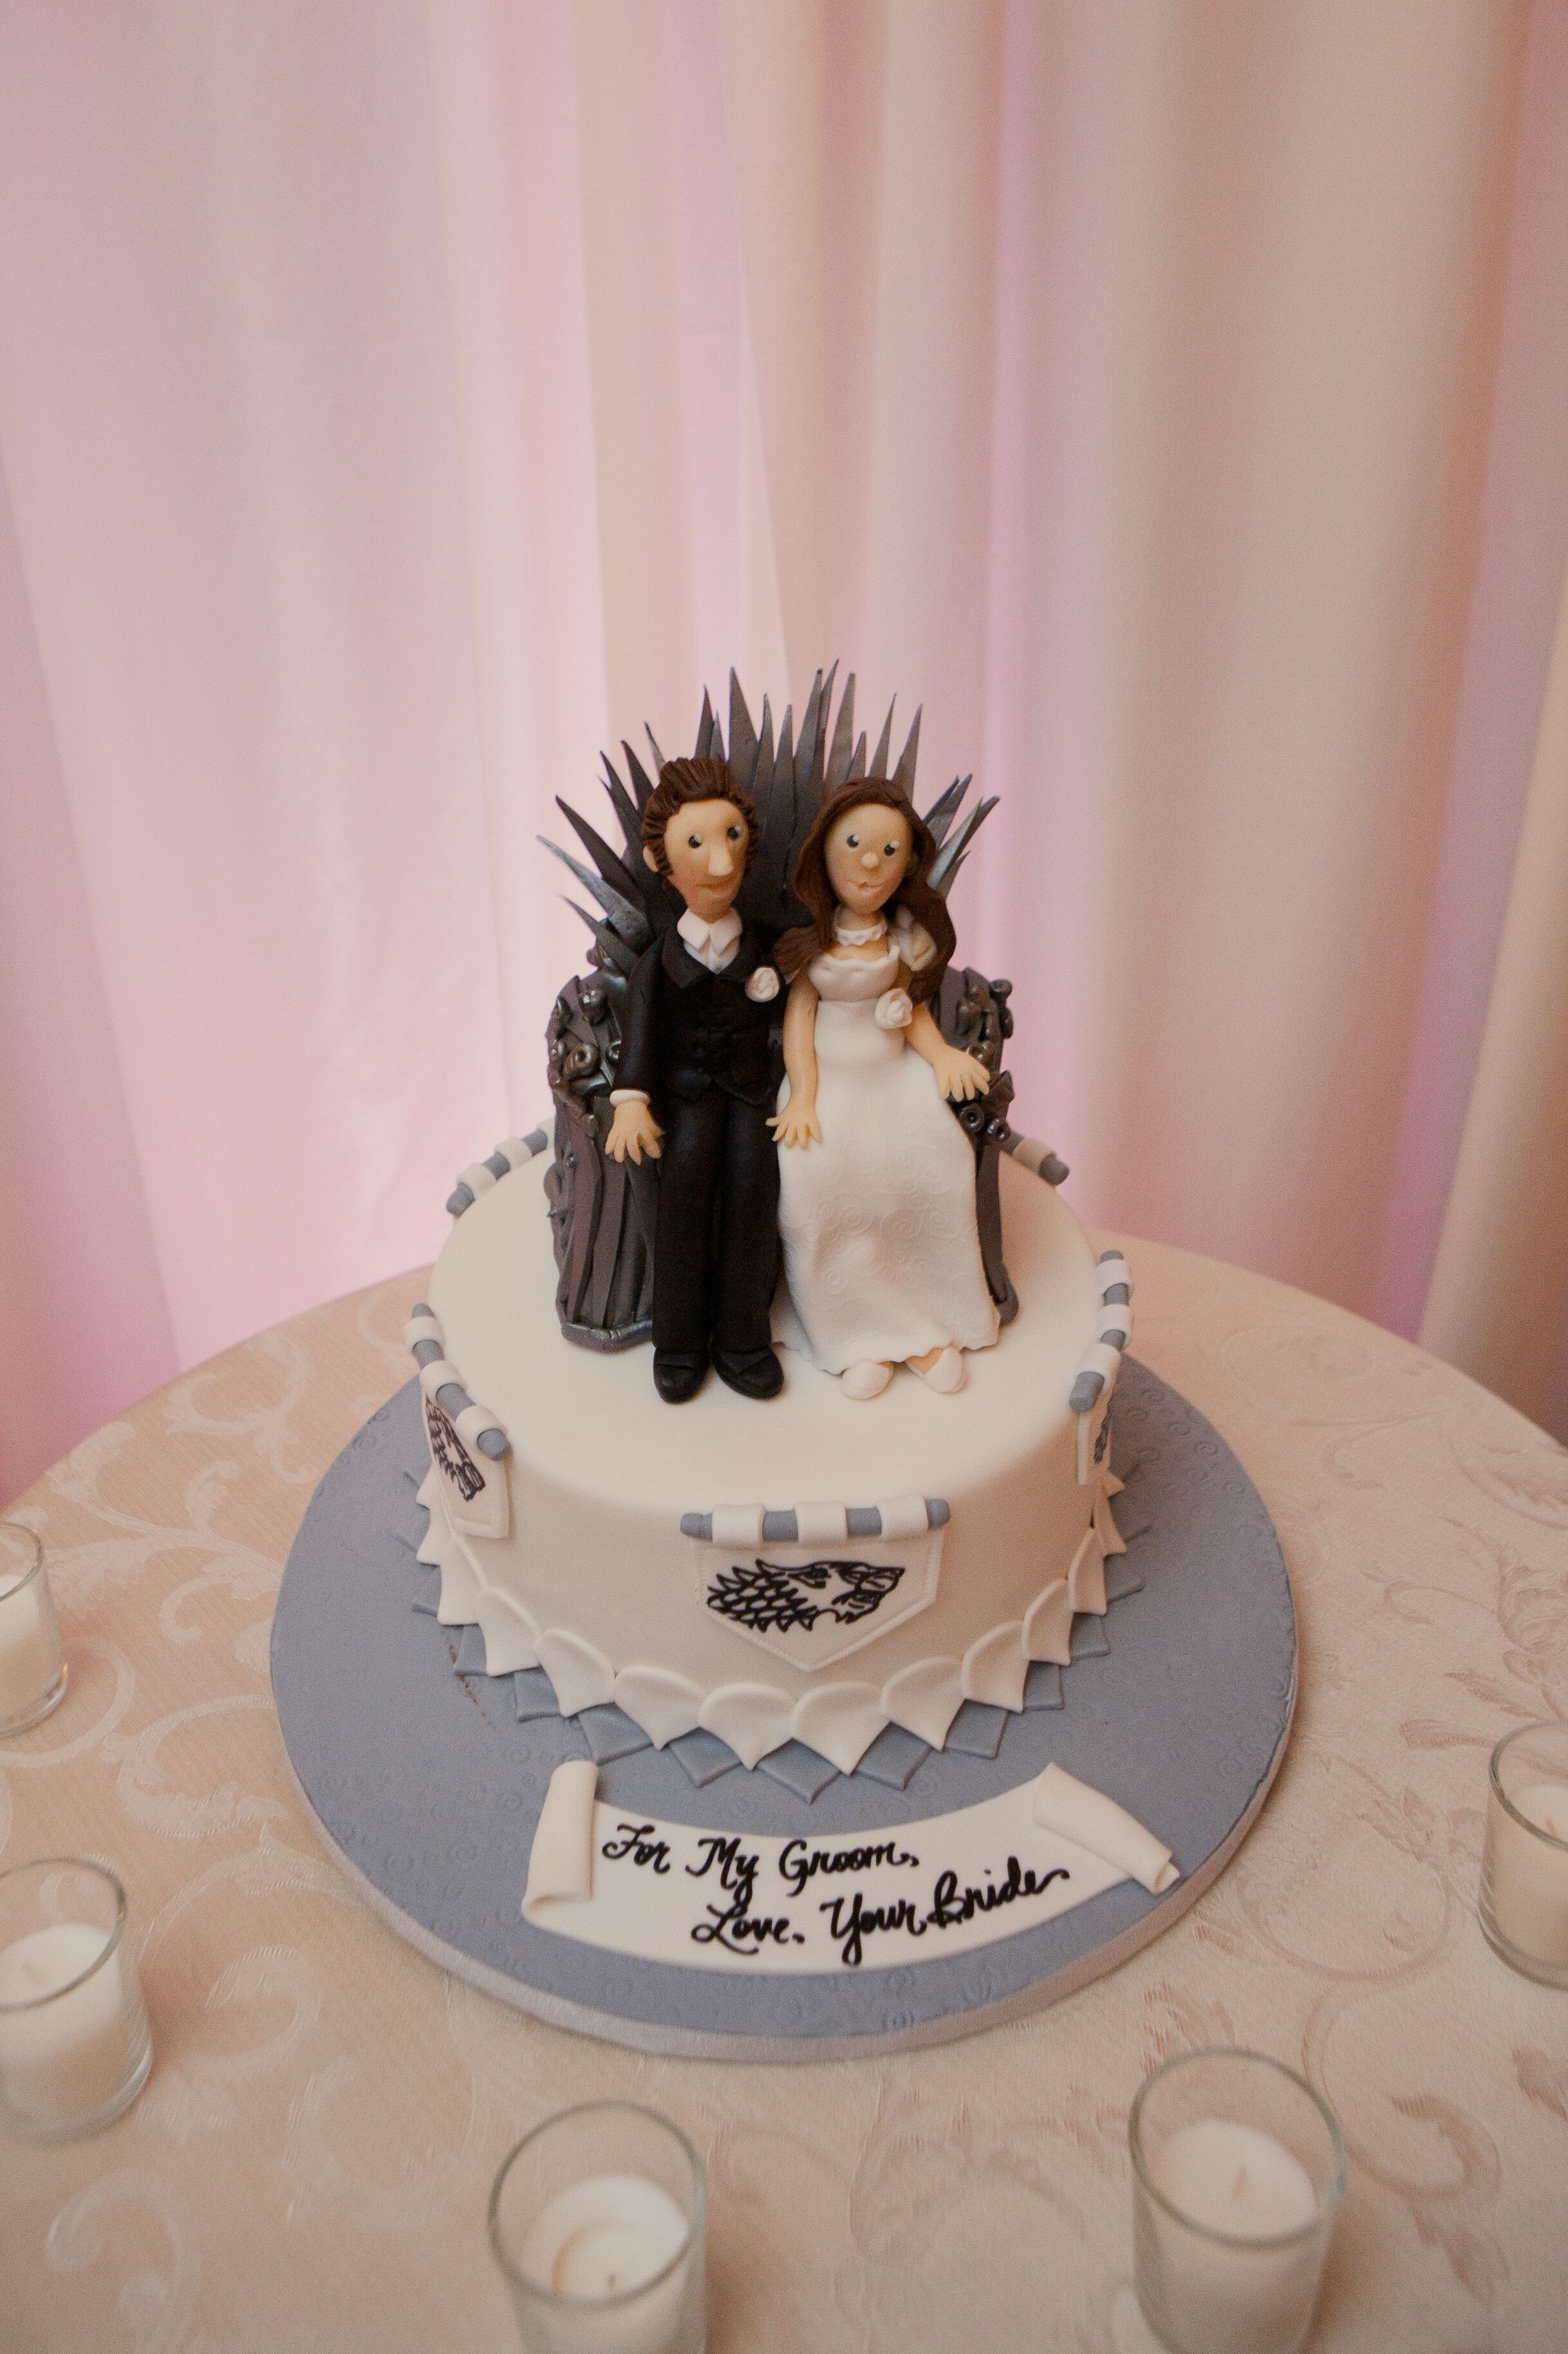 39 game of thrones 39 themed groom 39 s cake. Black Bedroom Furniture Sets. Home Design Ideas